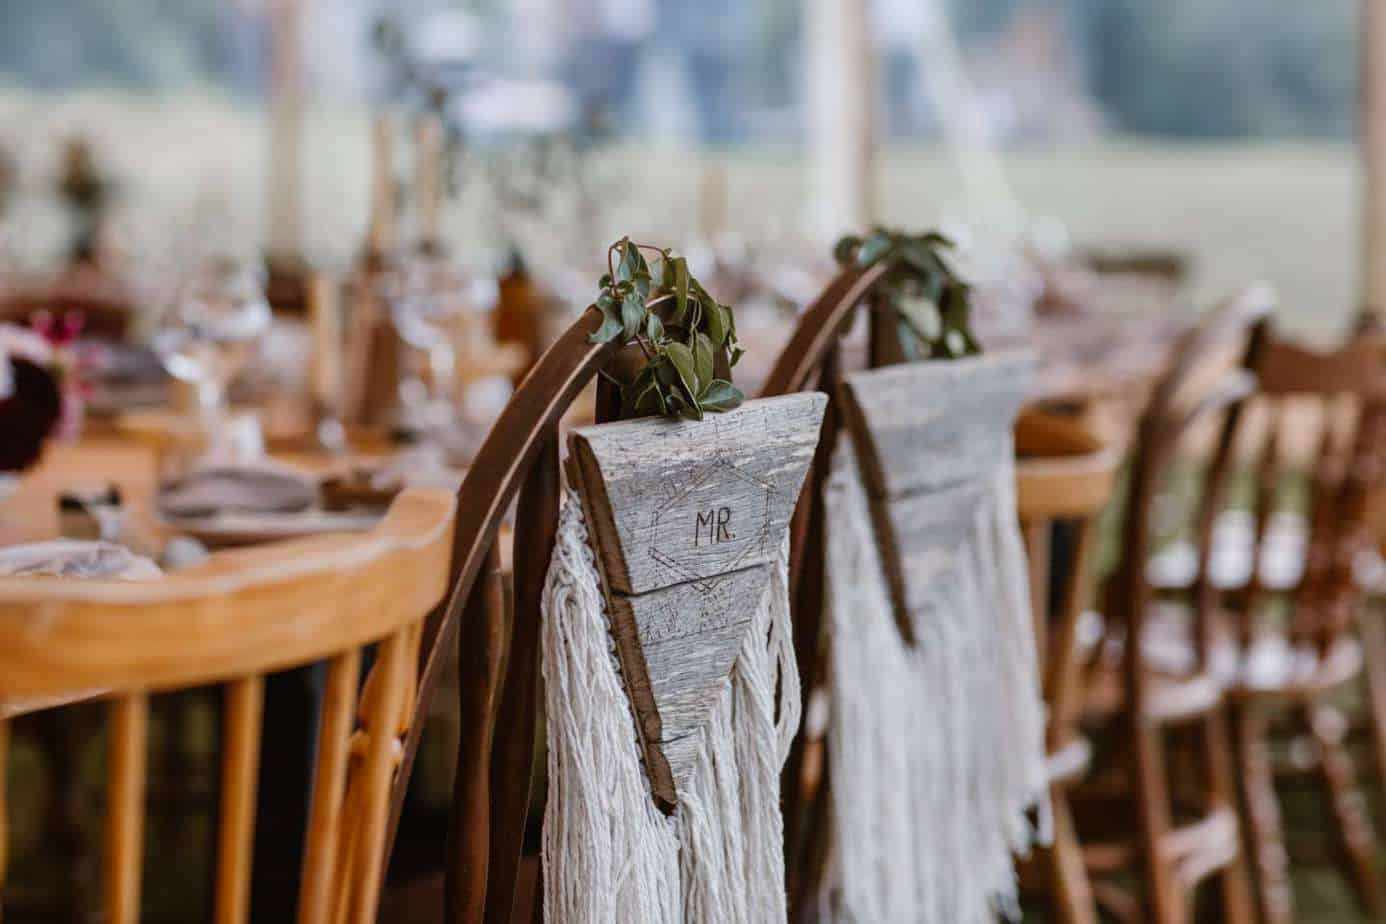 wedding chair hire hamilton nz oversized chairs mr and mrs weaves the white club